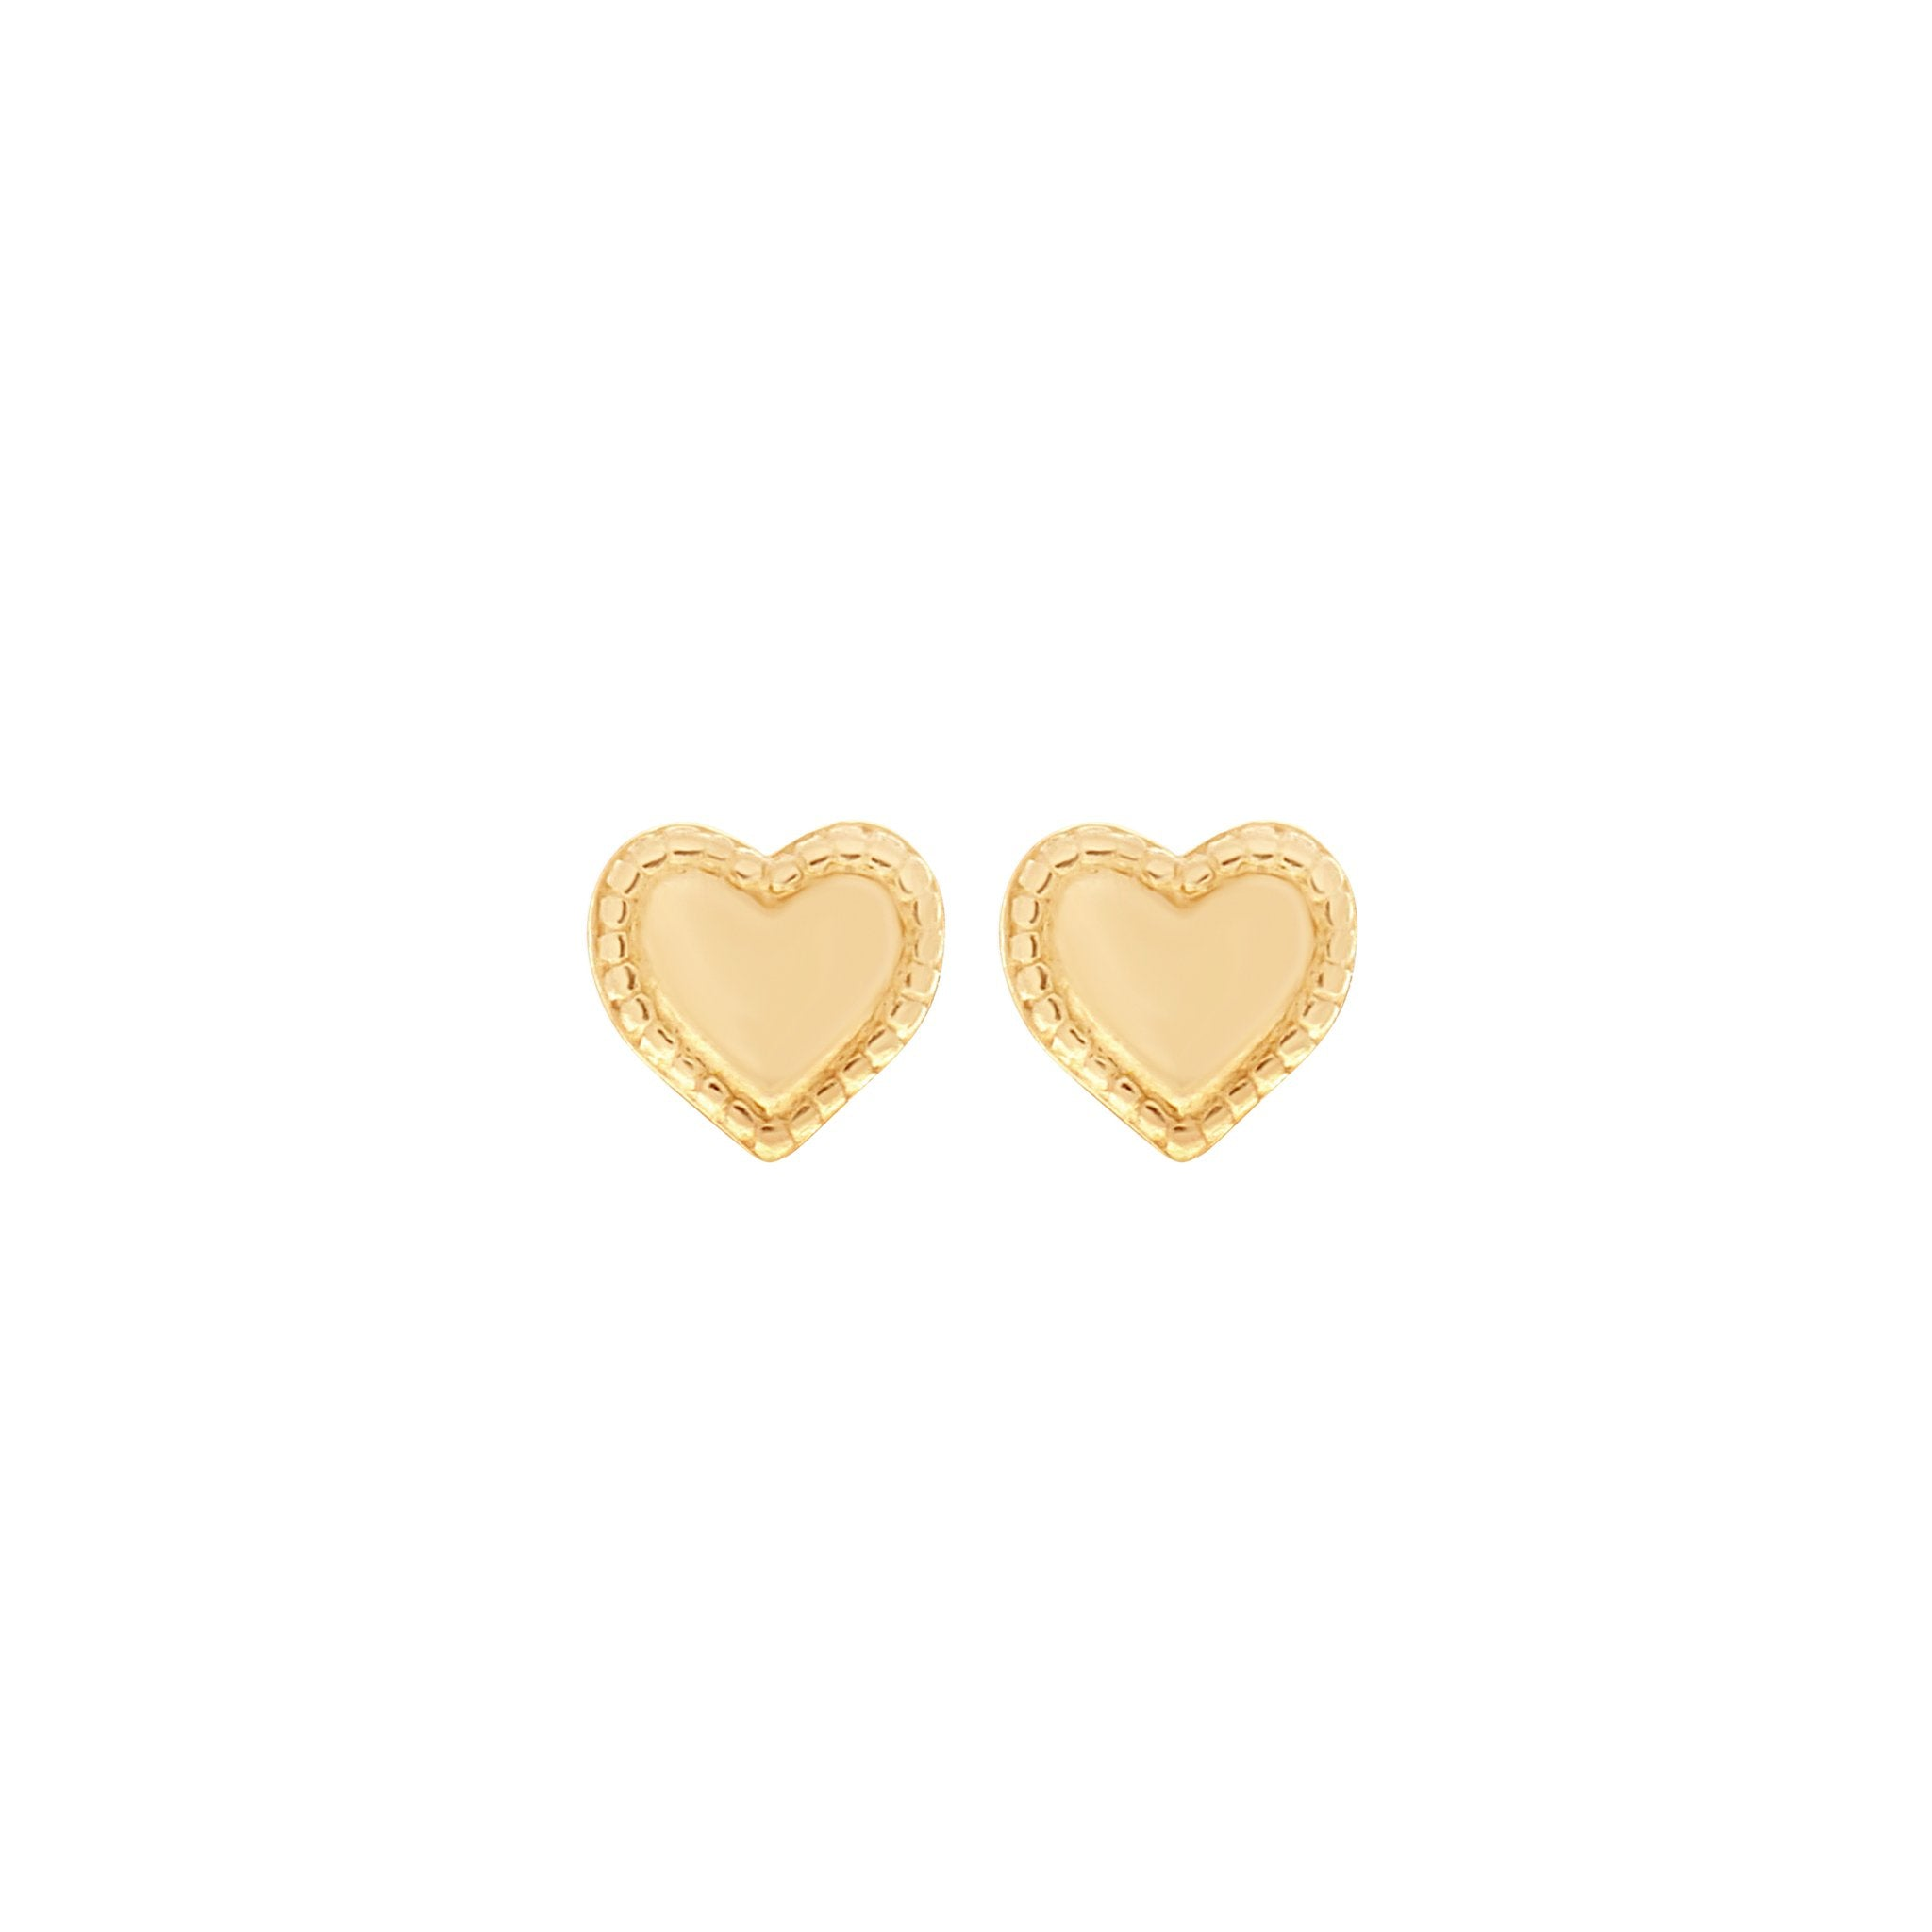 TEENY TINY HEART STUDS